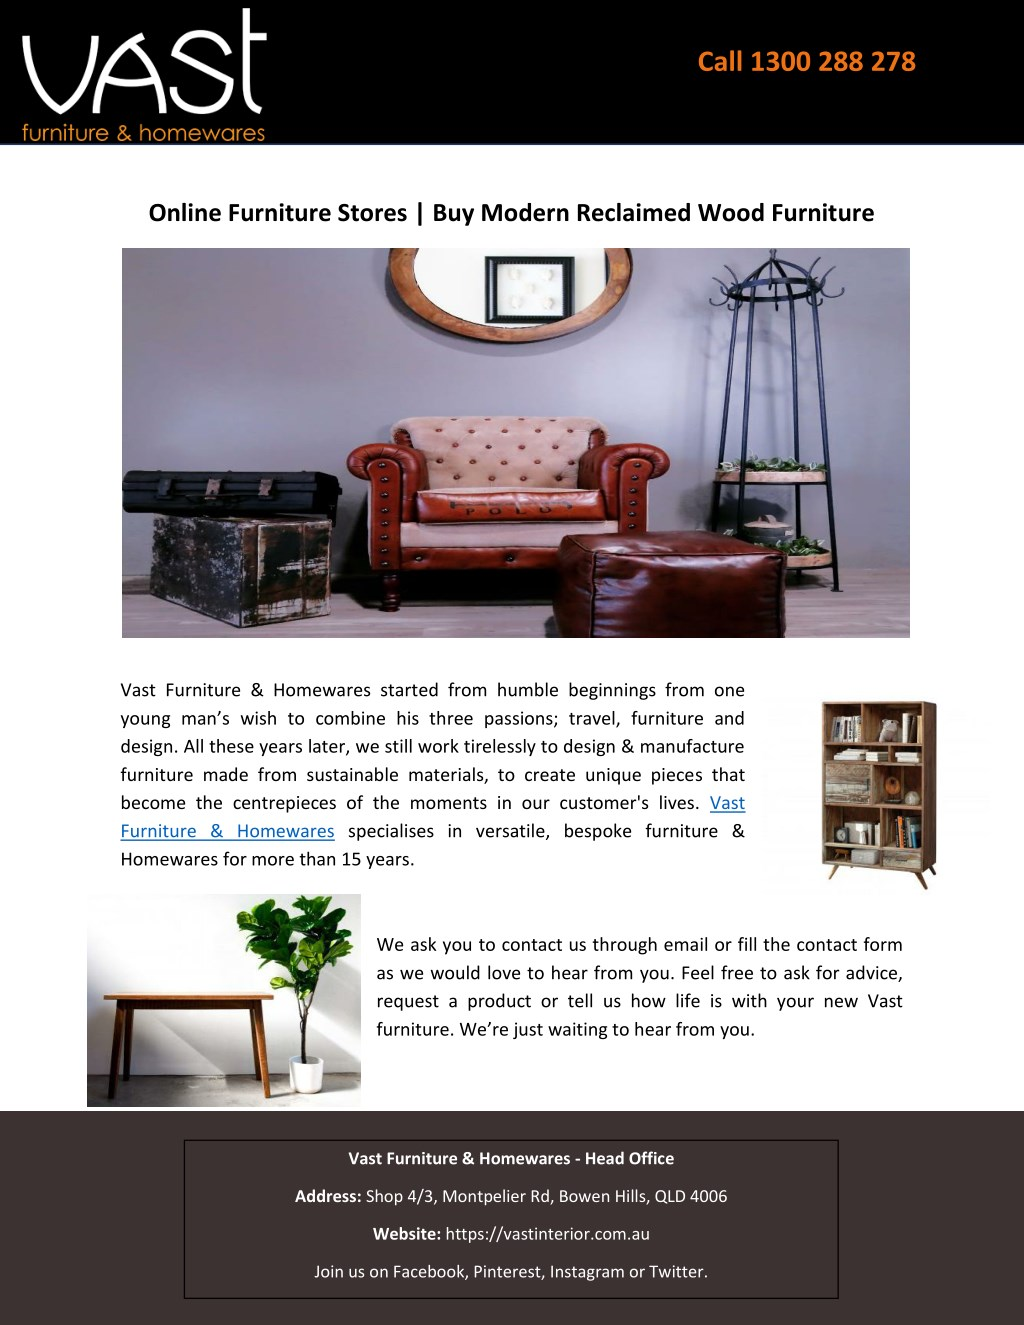 Online furniture stores buy modern reclaimed wood furniture powerpoint ppt presentation